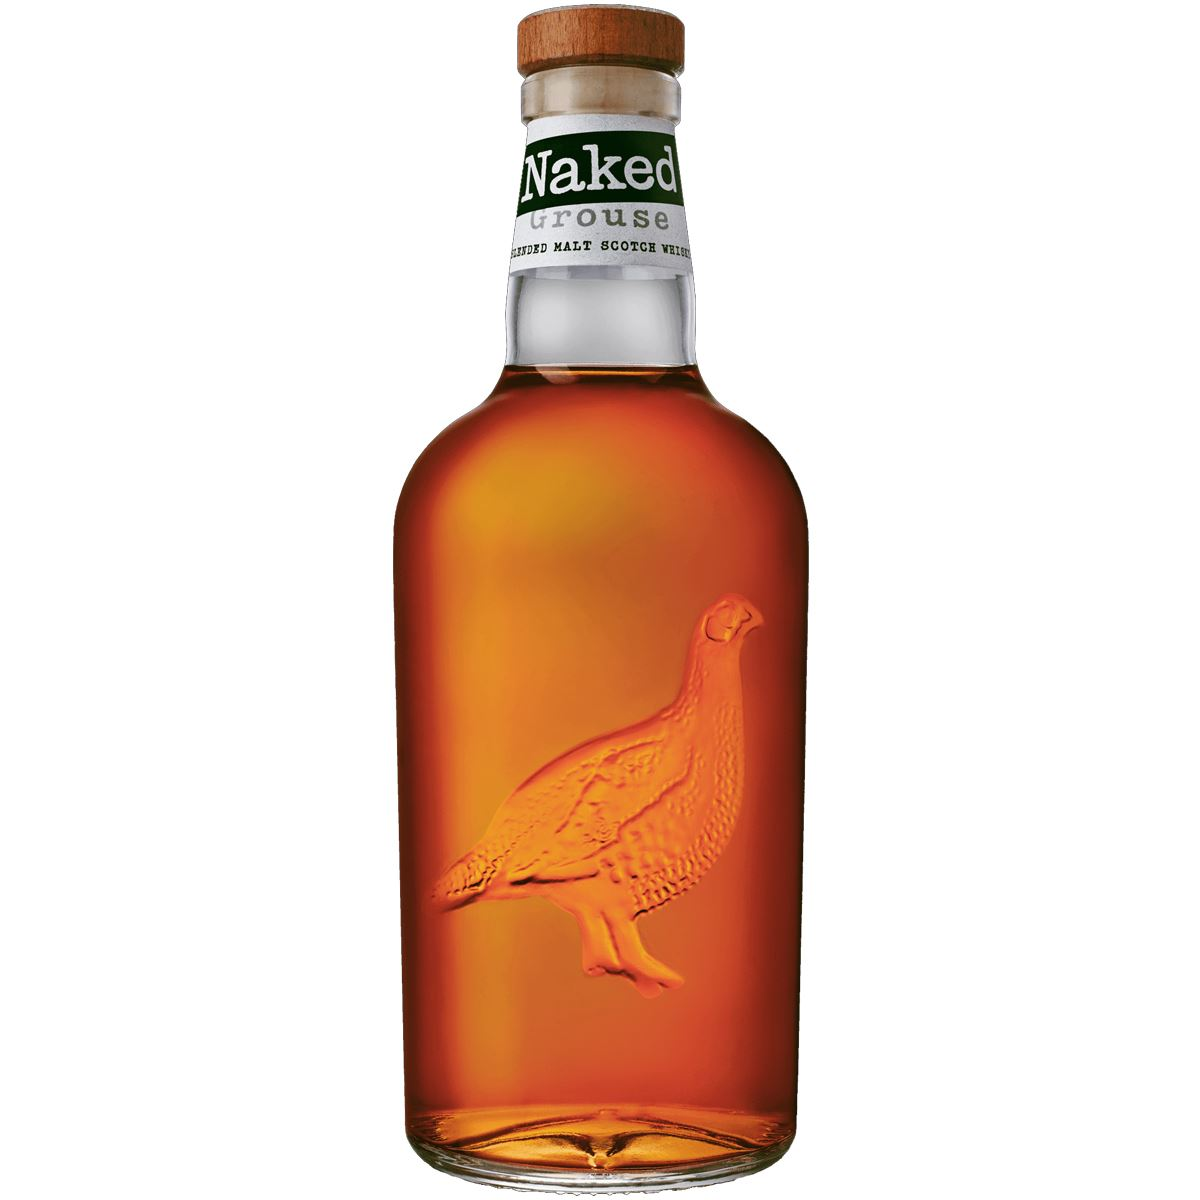 WHISKY BLENDED NAKED GROUSE 70CL